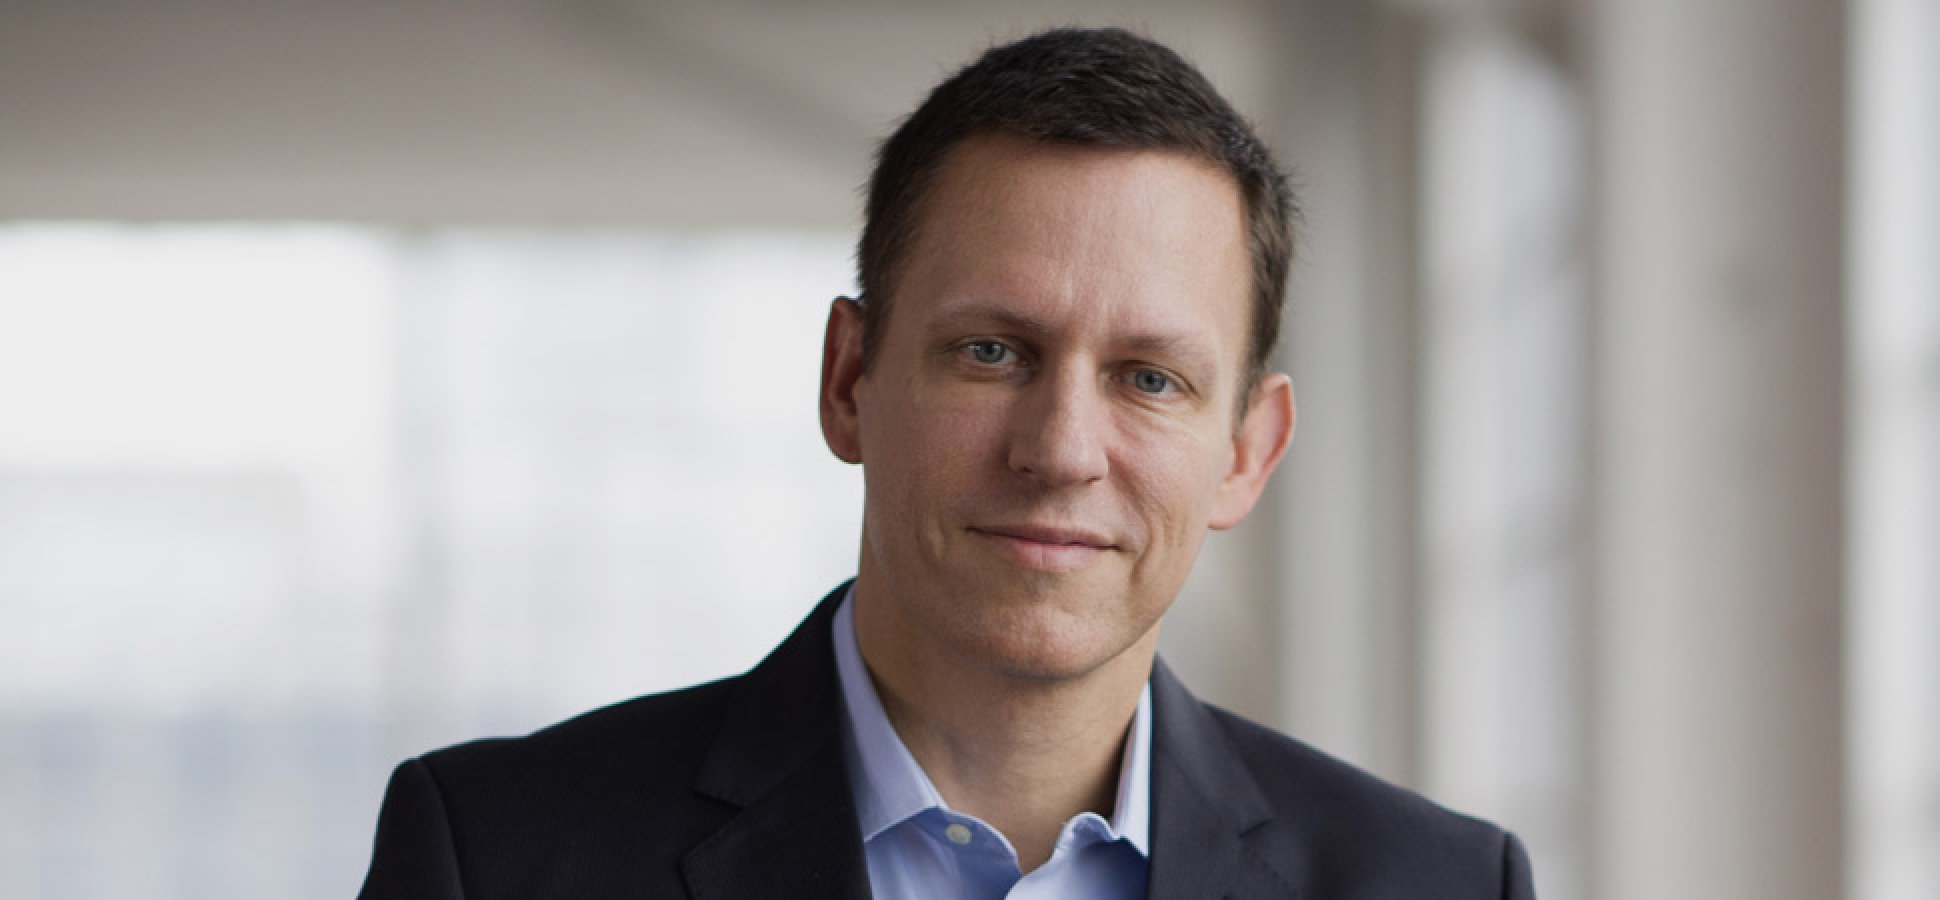 Peter Thiel just sold $101 million worth of Facebook shares